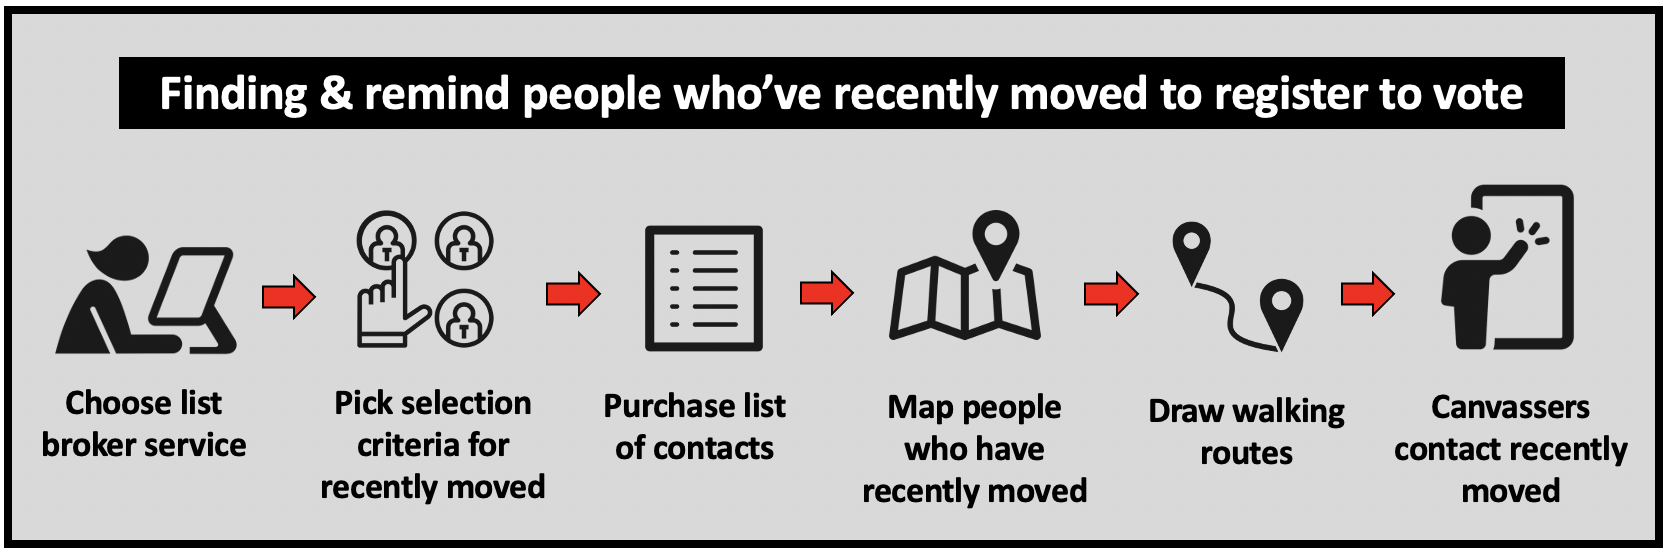 Find and remind people who have recently moved to register to vote.